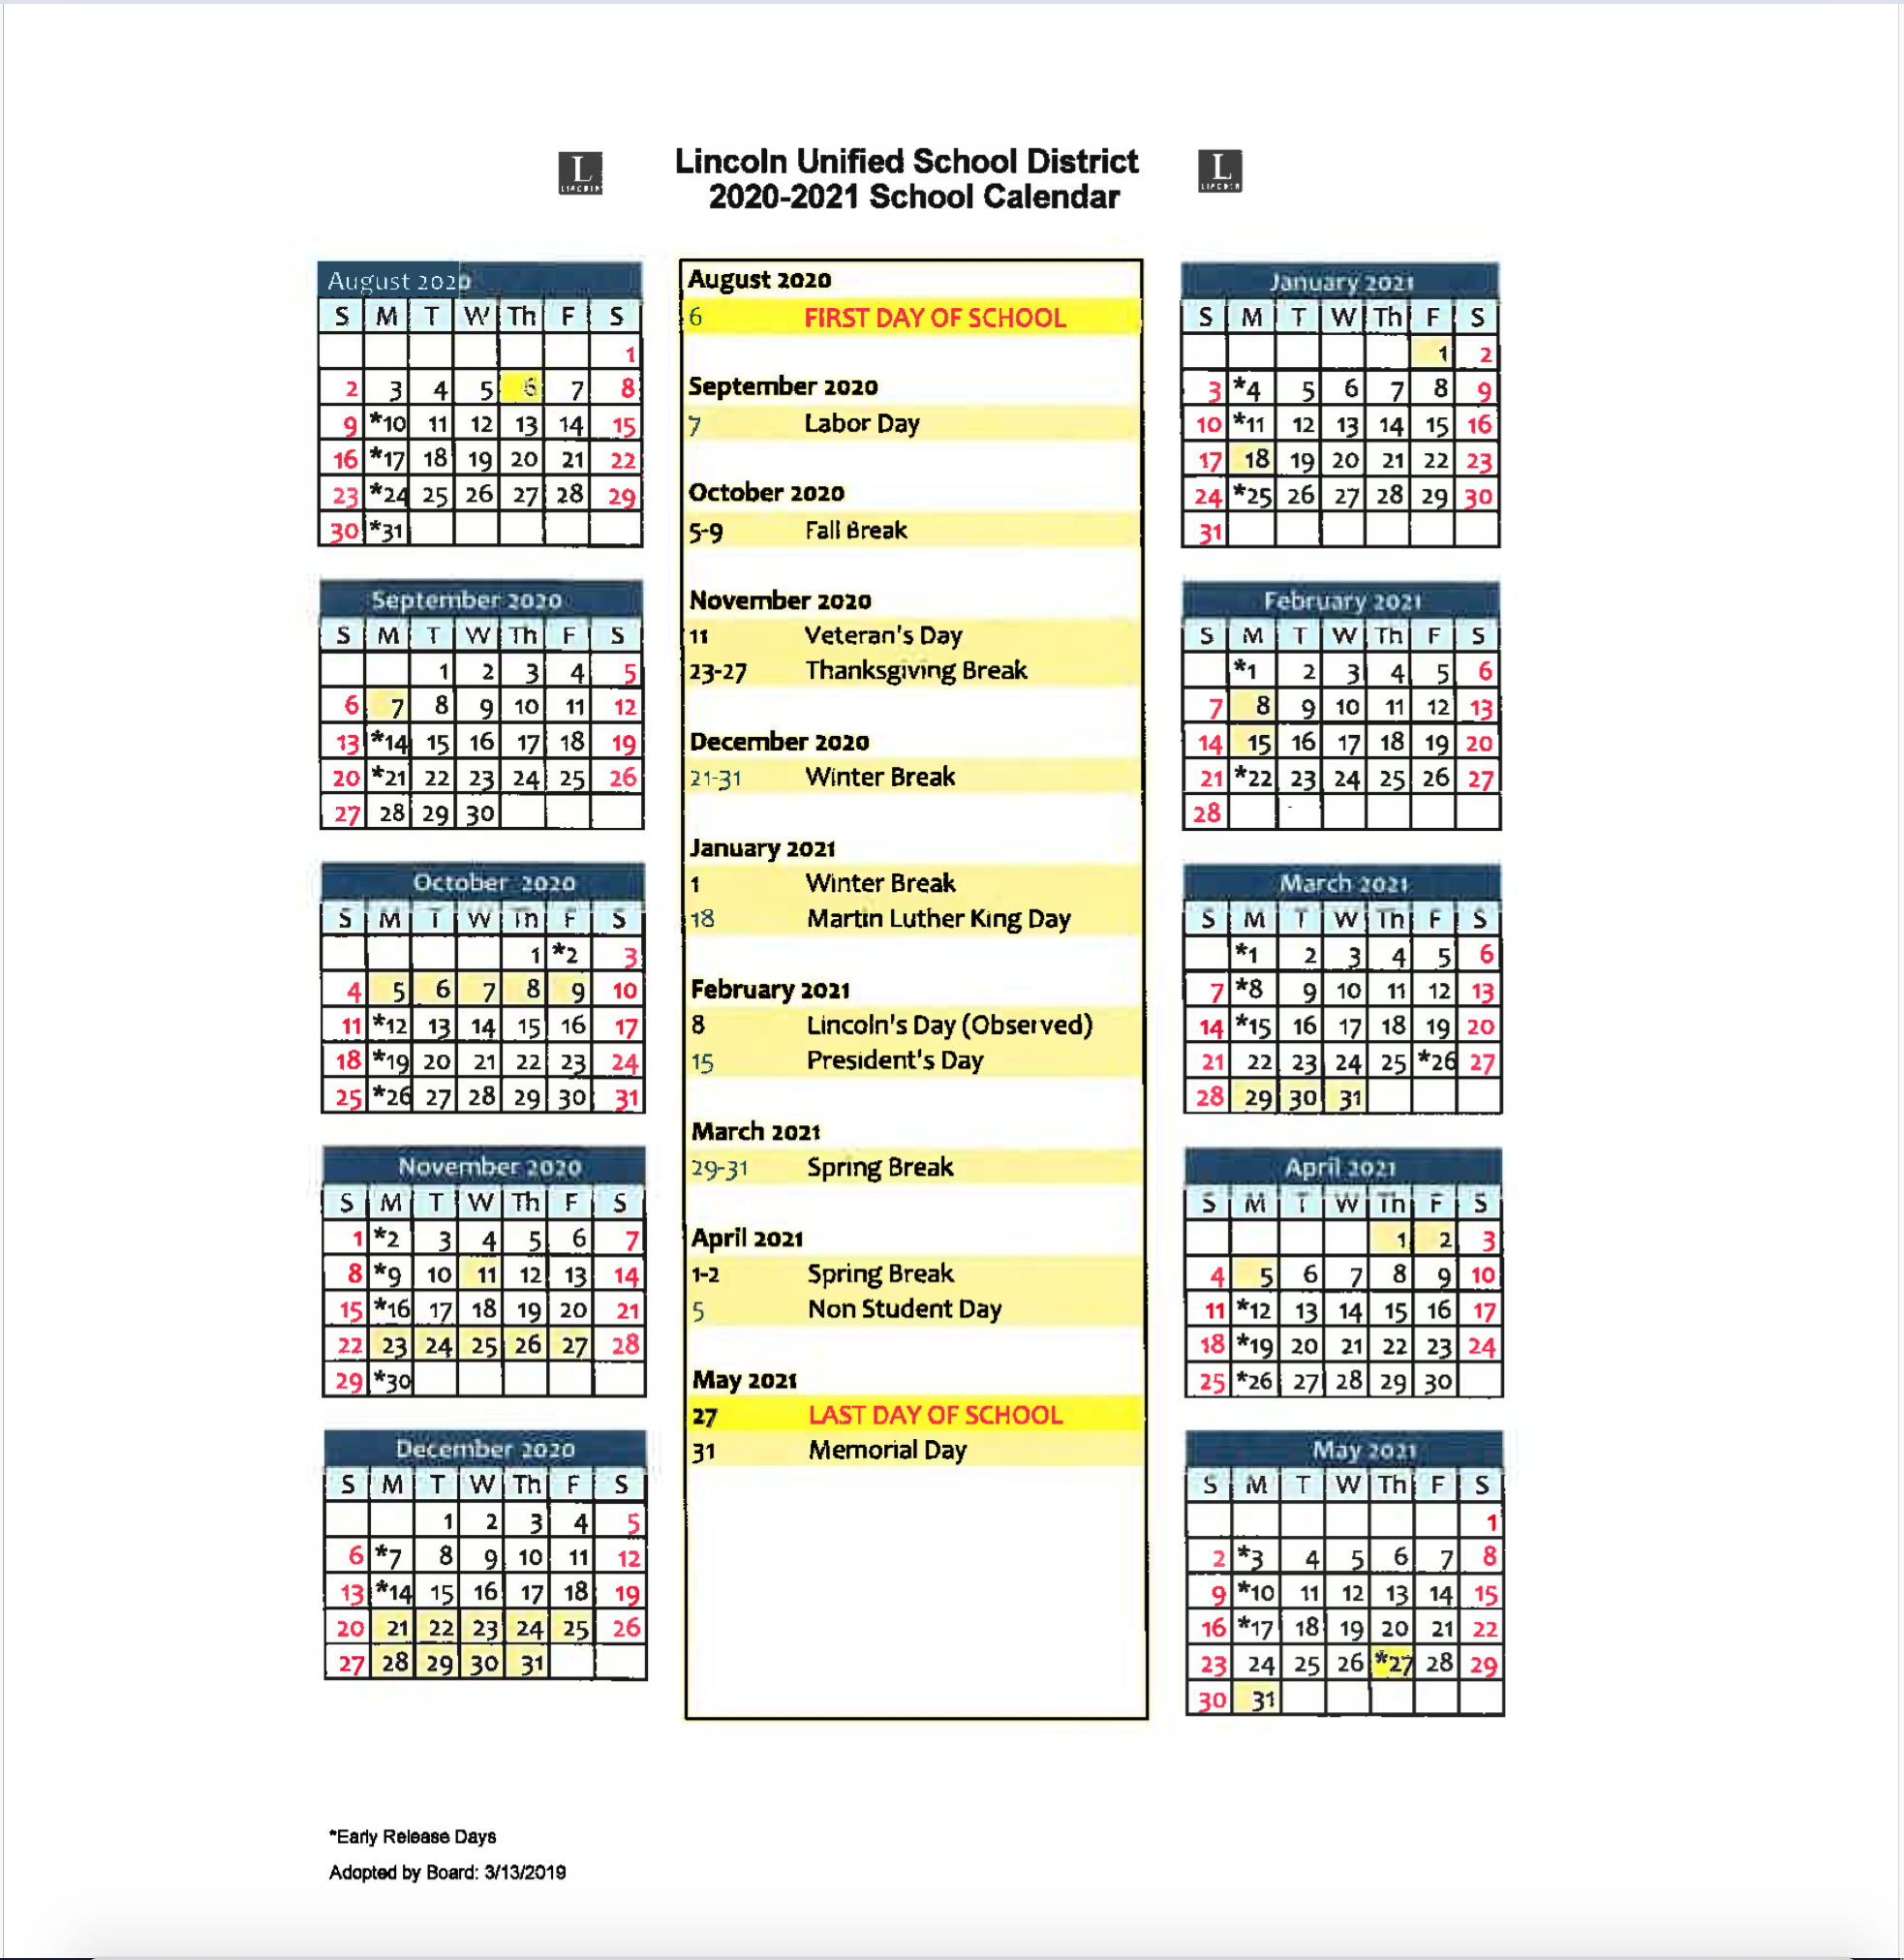 Lincoln Unified School District For City Of Merced School District Calendar